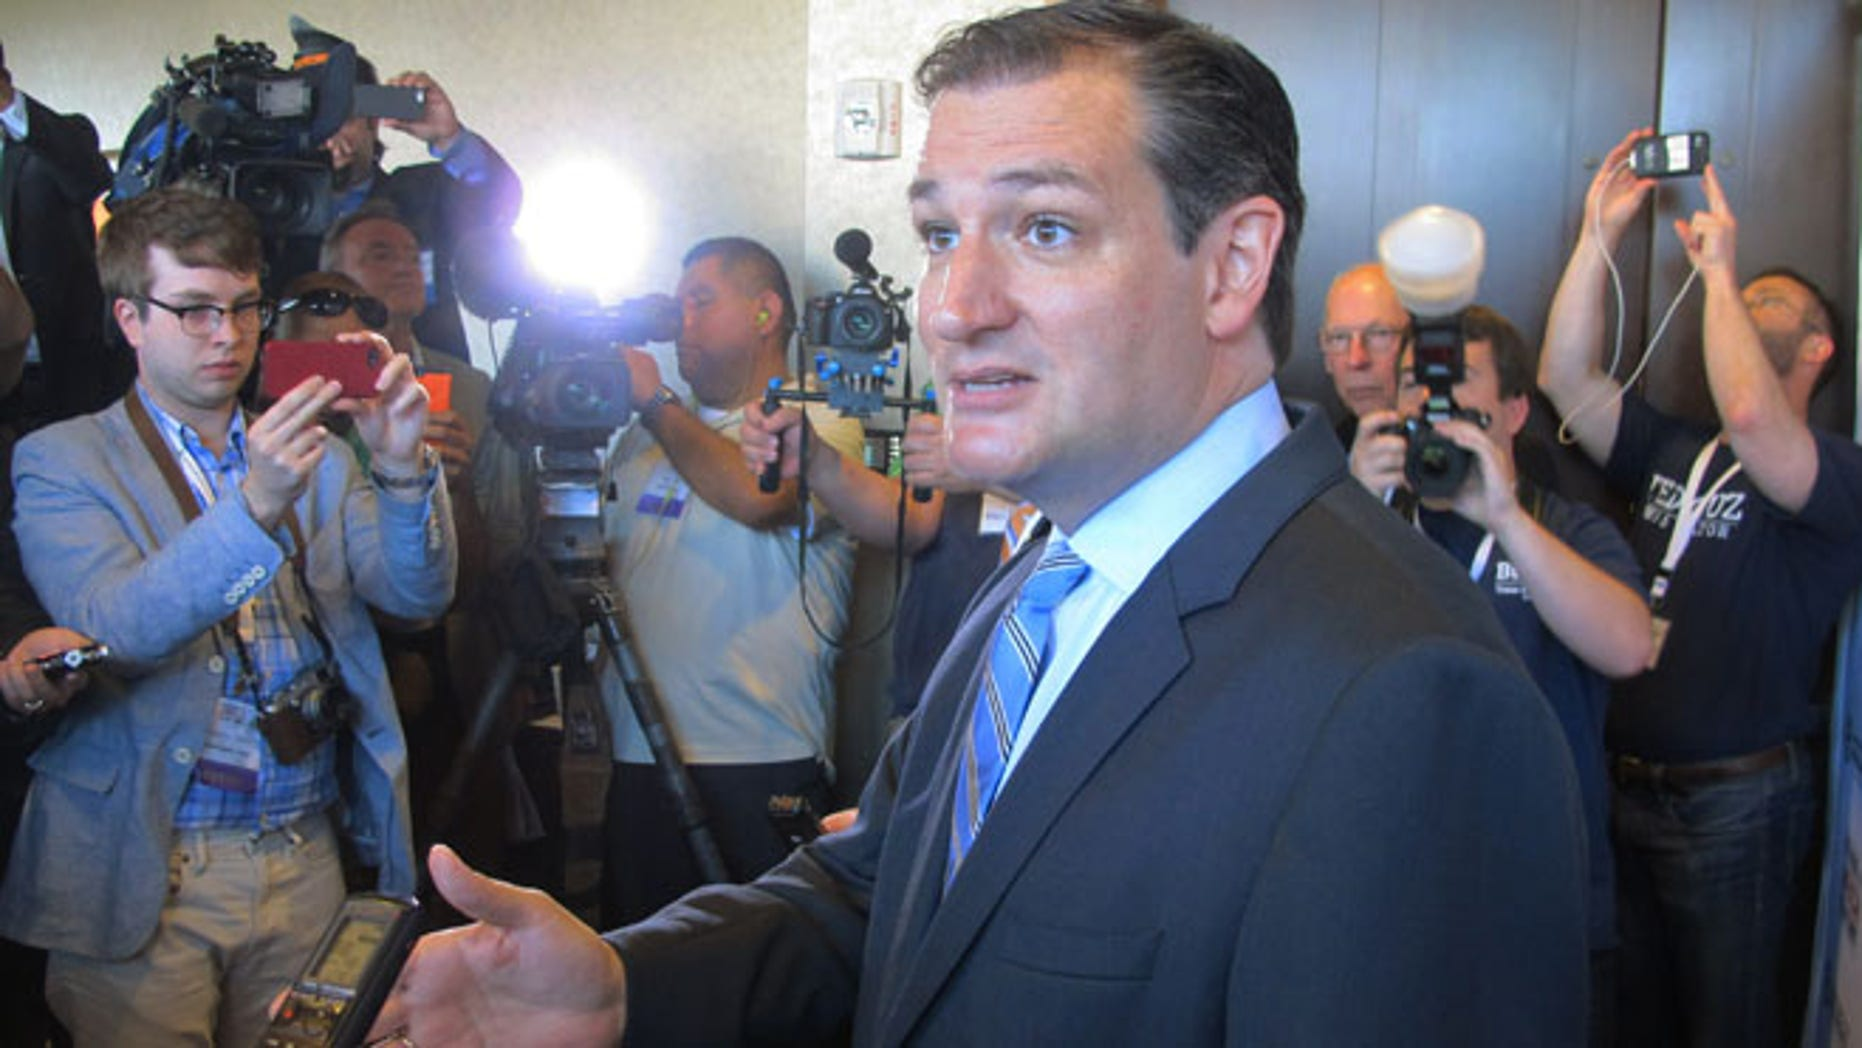 Aug 30, 2014: U.S. Sen. Ted Cruz, R-Texas, speaks to reporters after his speech at the Americans for Prosperity Summit in Dallas. (AP)